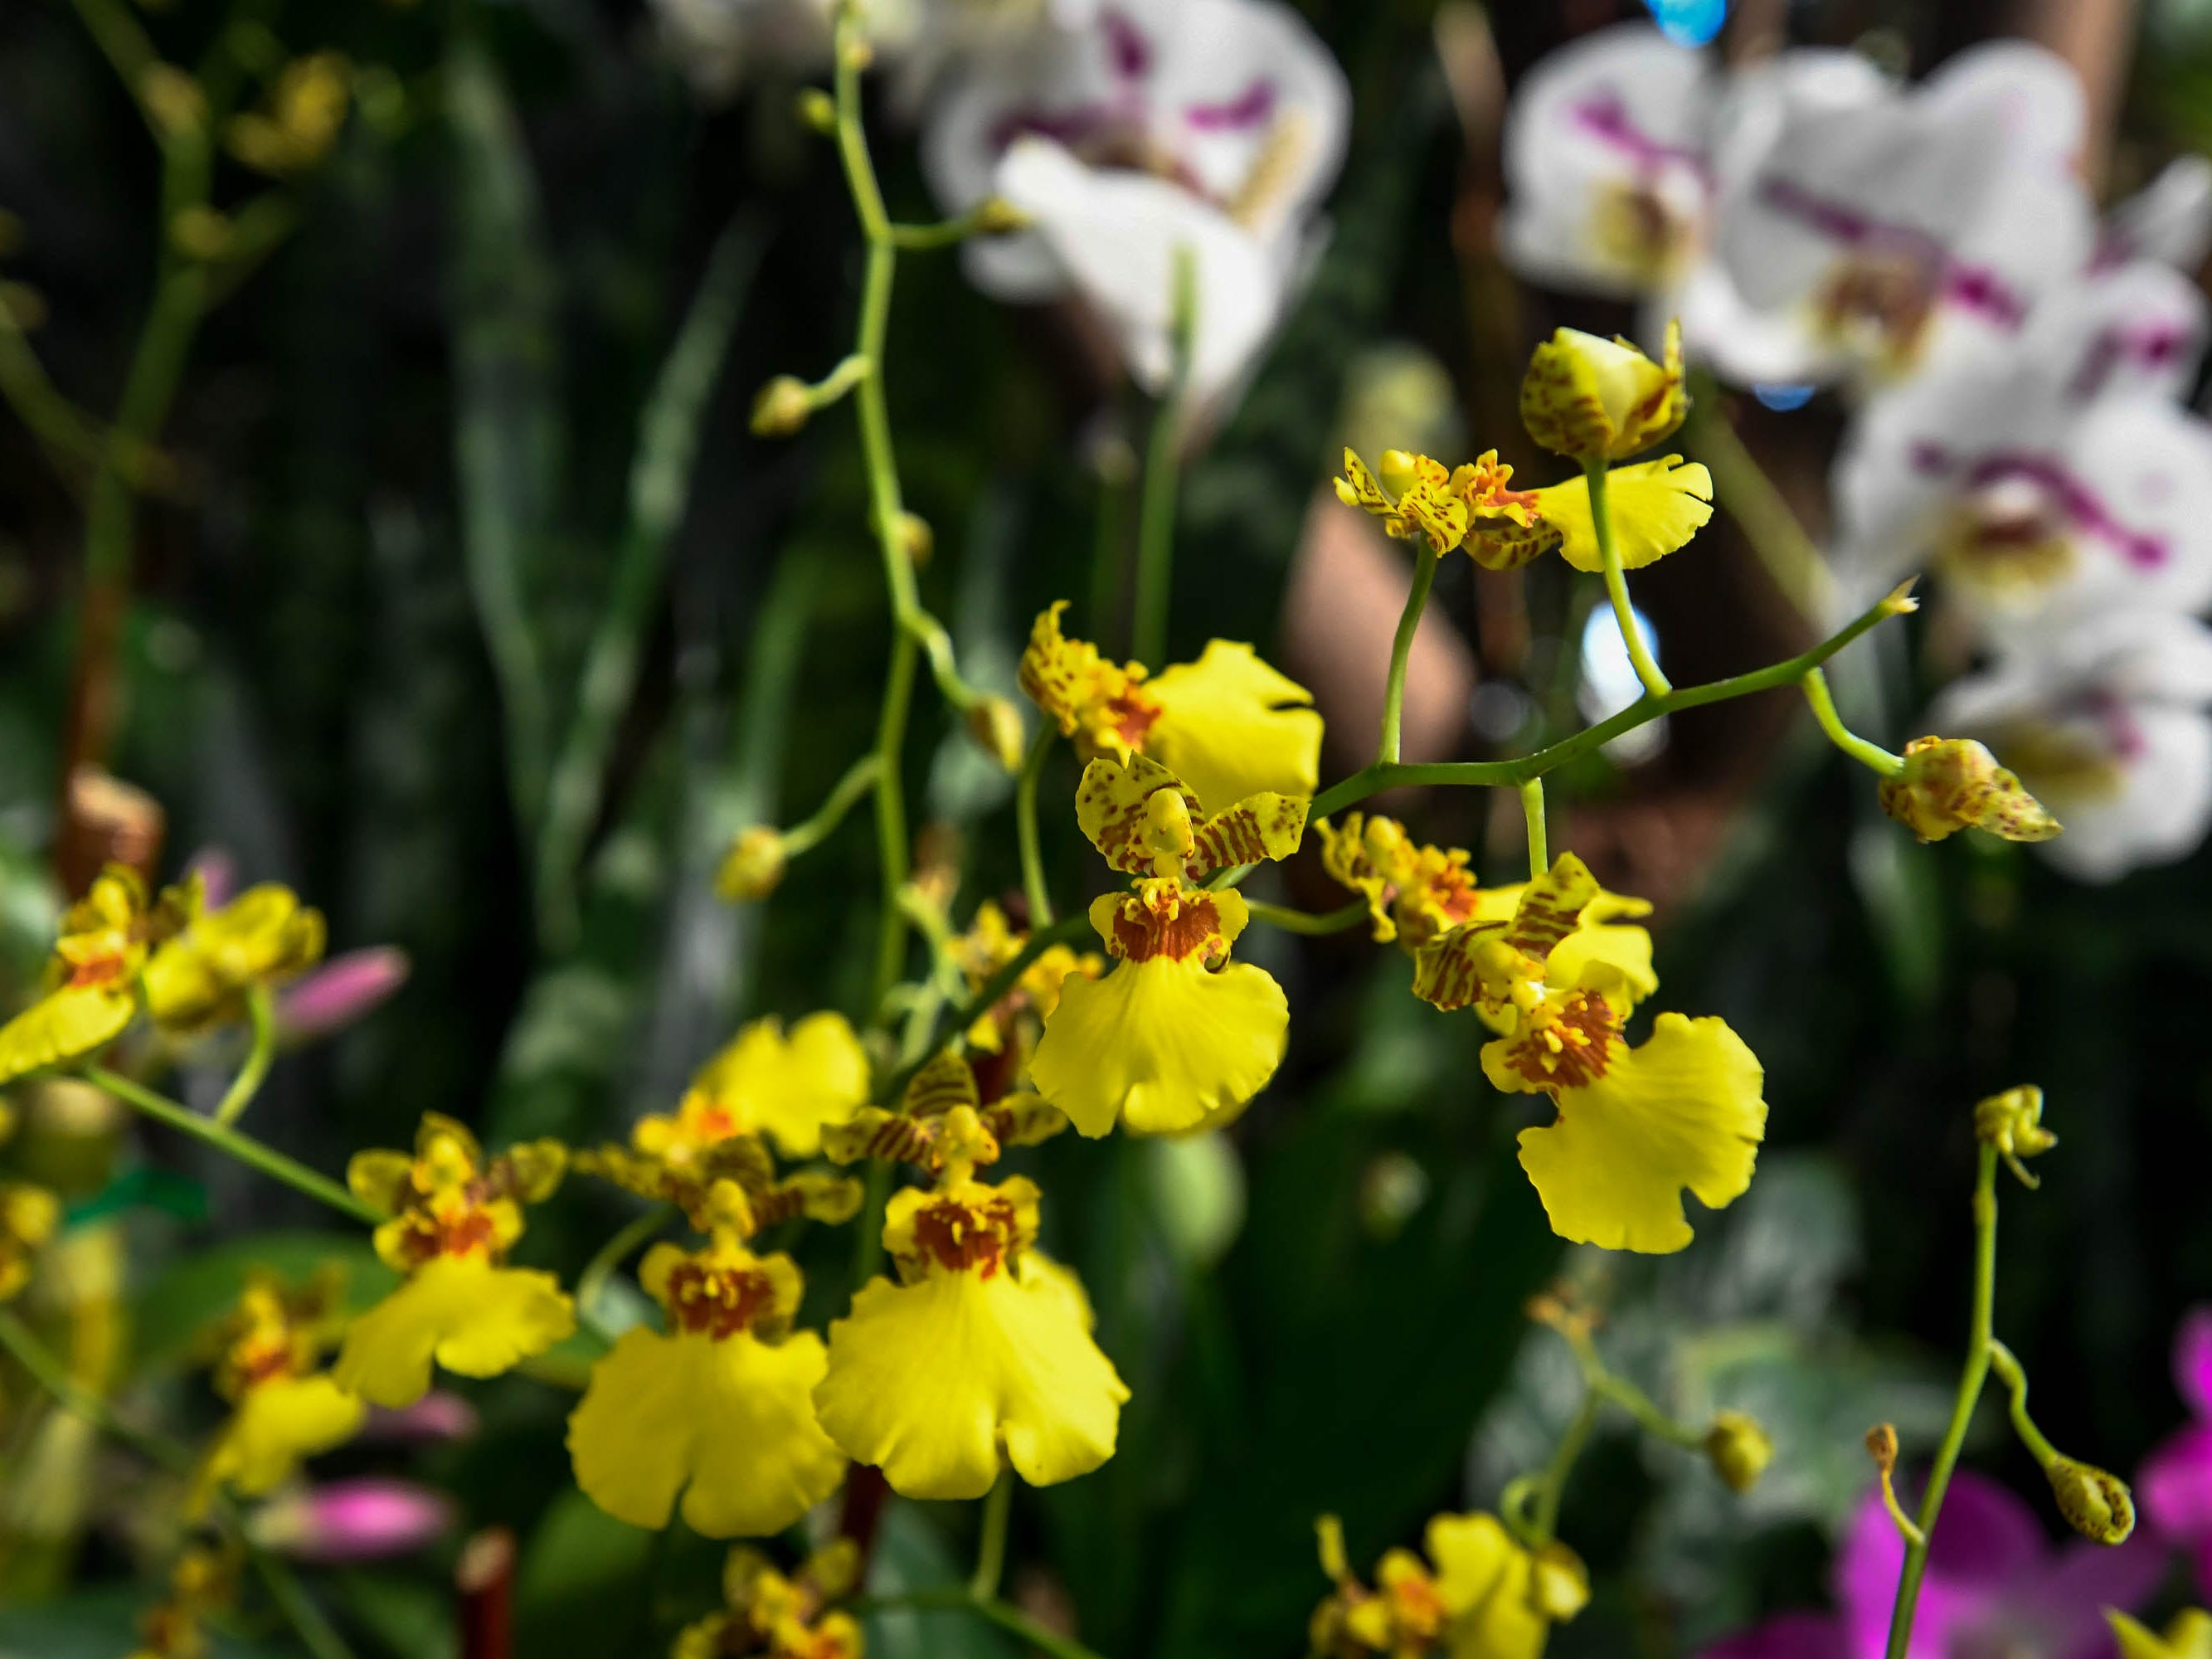 A Yellow Oncidium Orchid on display in the Amazonia exhibit at Evansville's Mesker Park Zoo Friday, February 8, 2019.